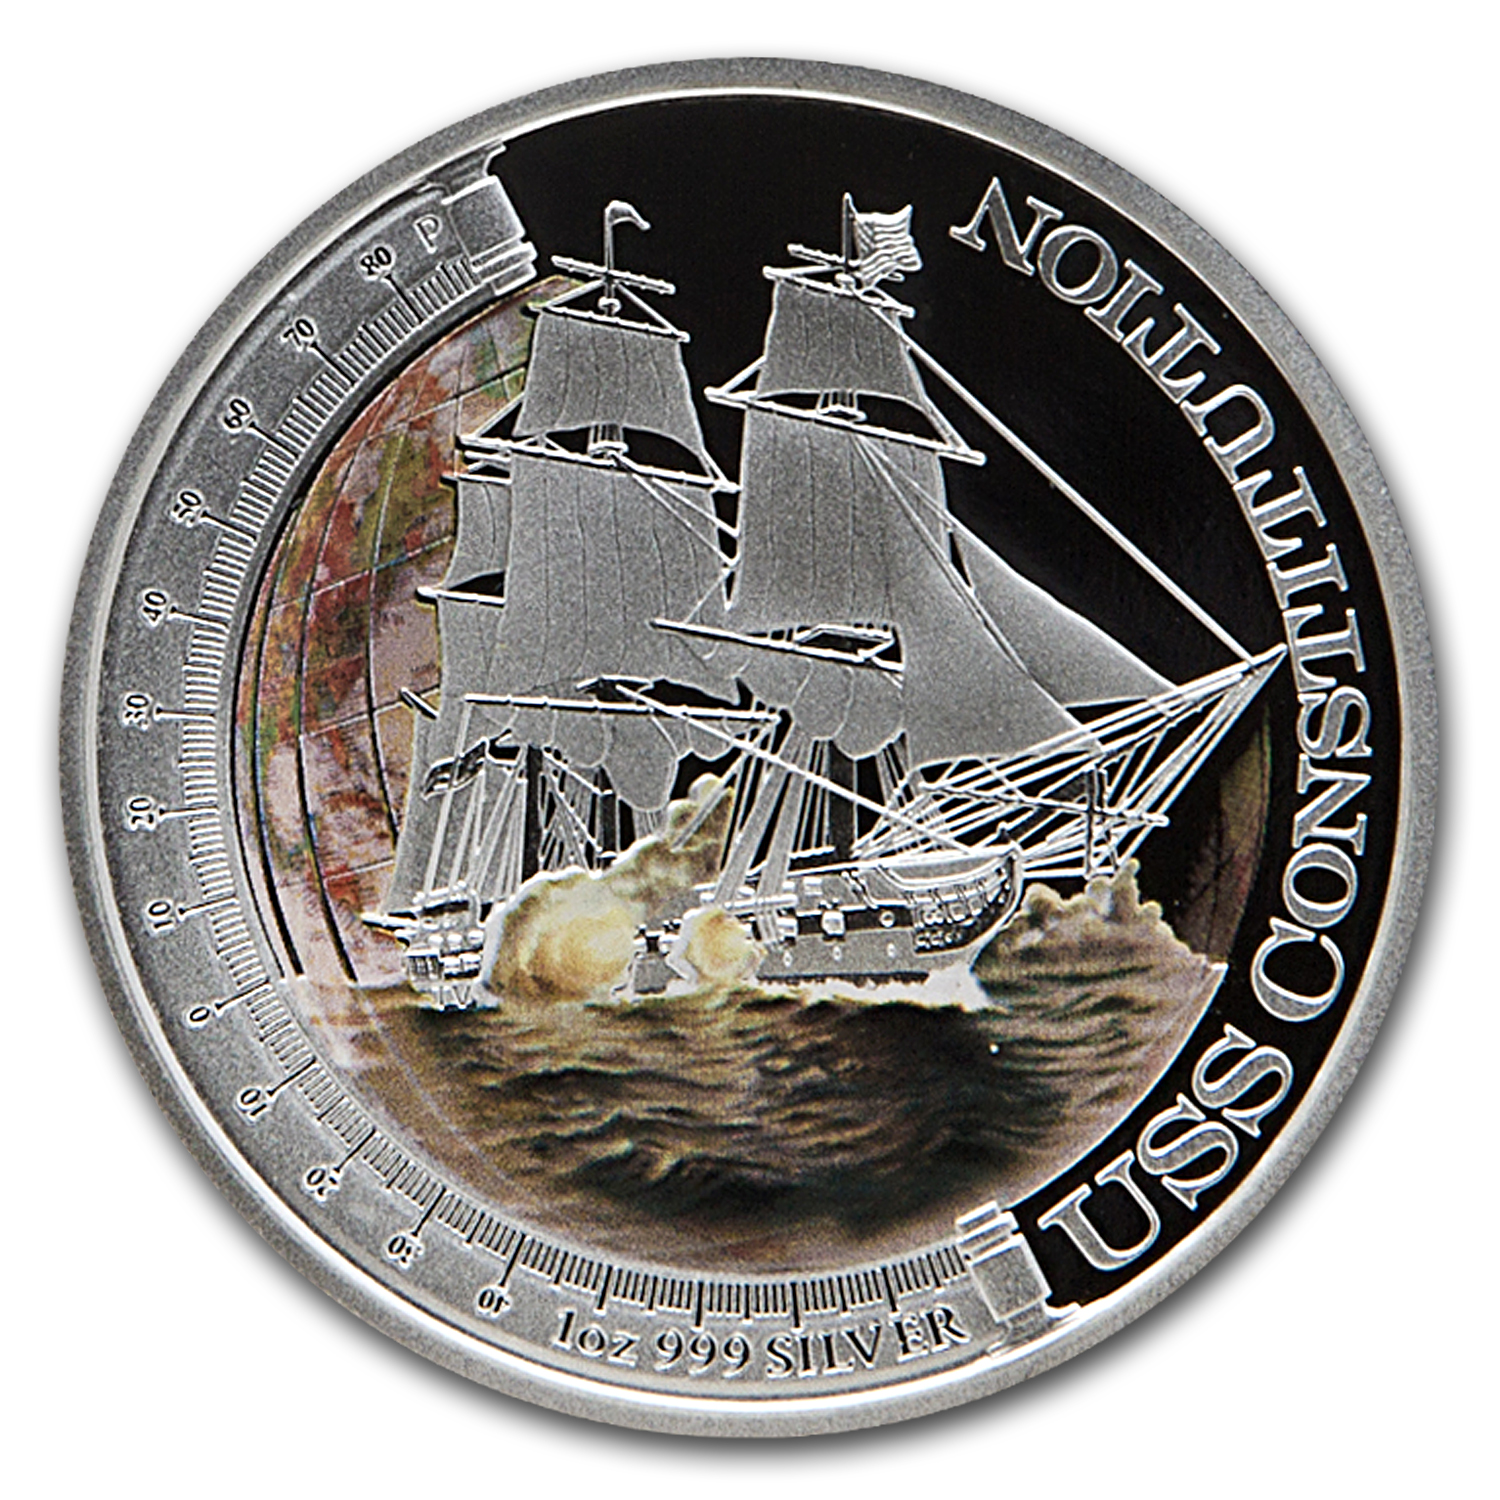 2012 1 oz Silver Ships that Changed the World Pf (Constitution)